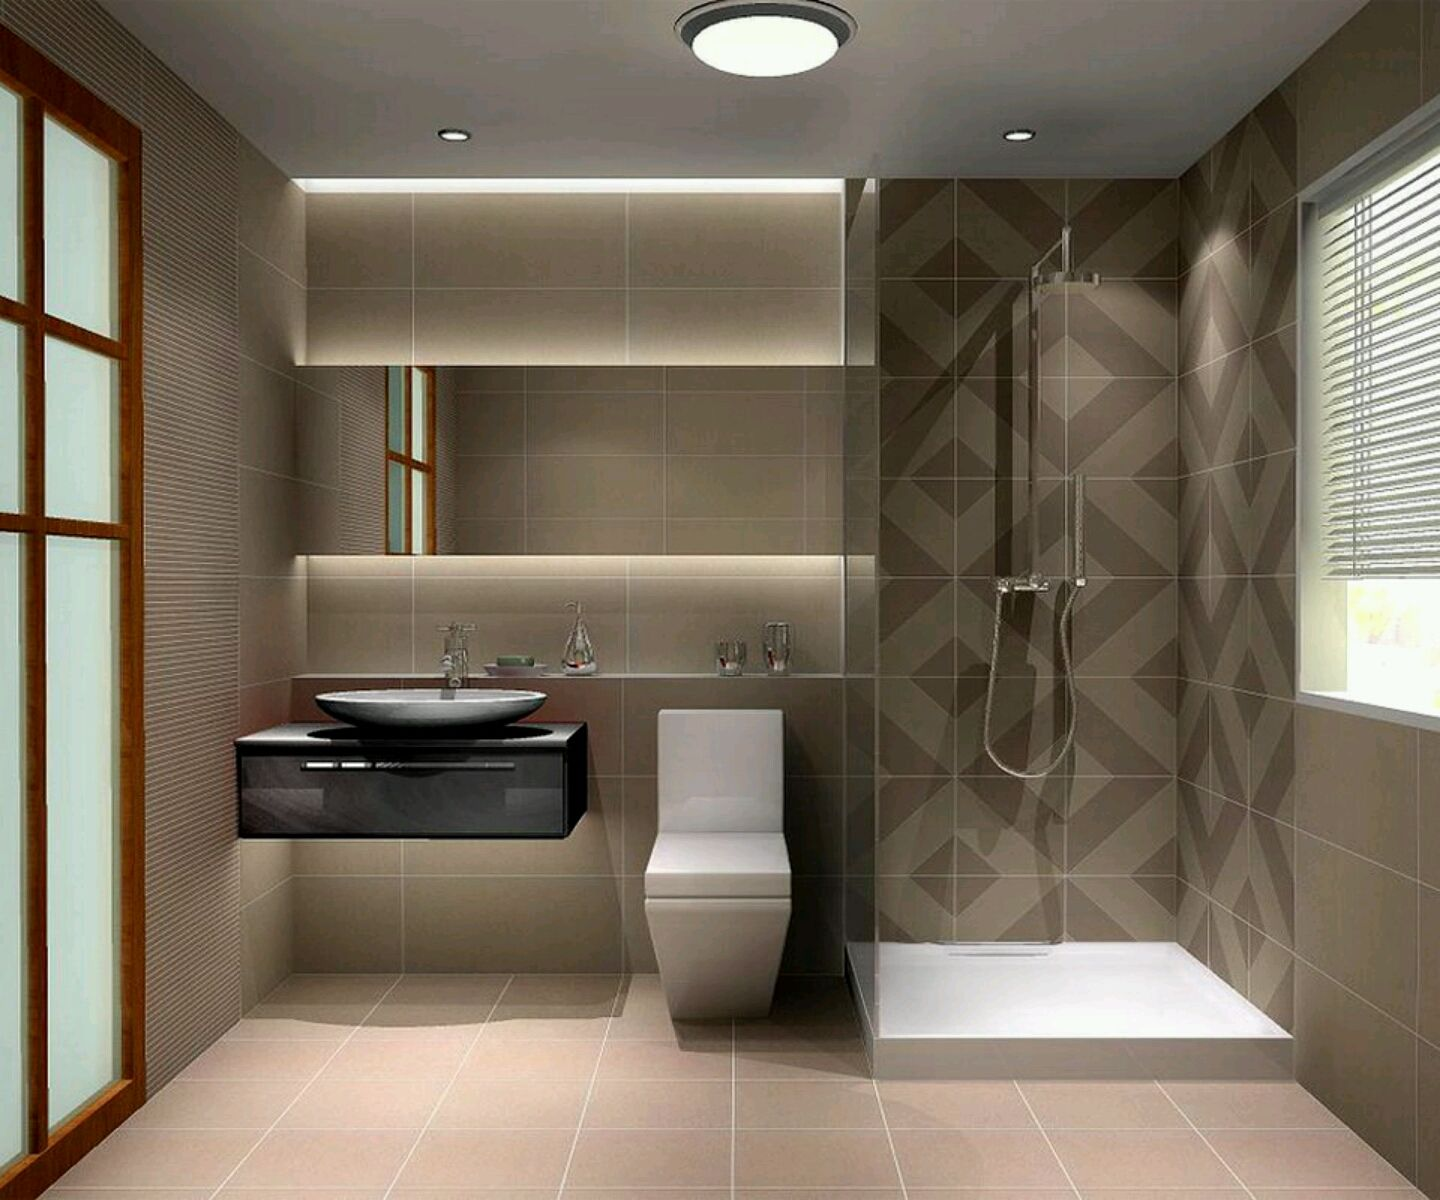 Luxury bathroom layout - Cool For Large And Small Space With Luxury Bathroom Decoration For Small Design Inspiration Cool Ideas Dazzling Remodels Delicious Bath Also Cool Design